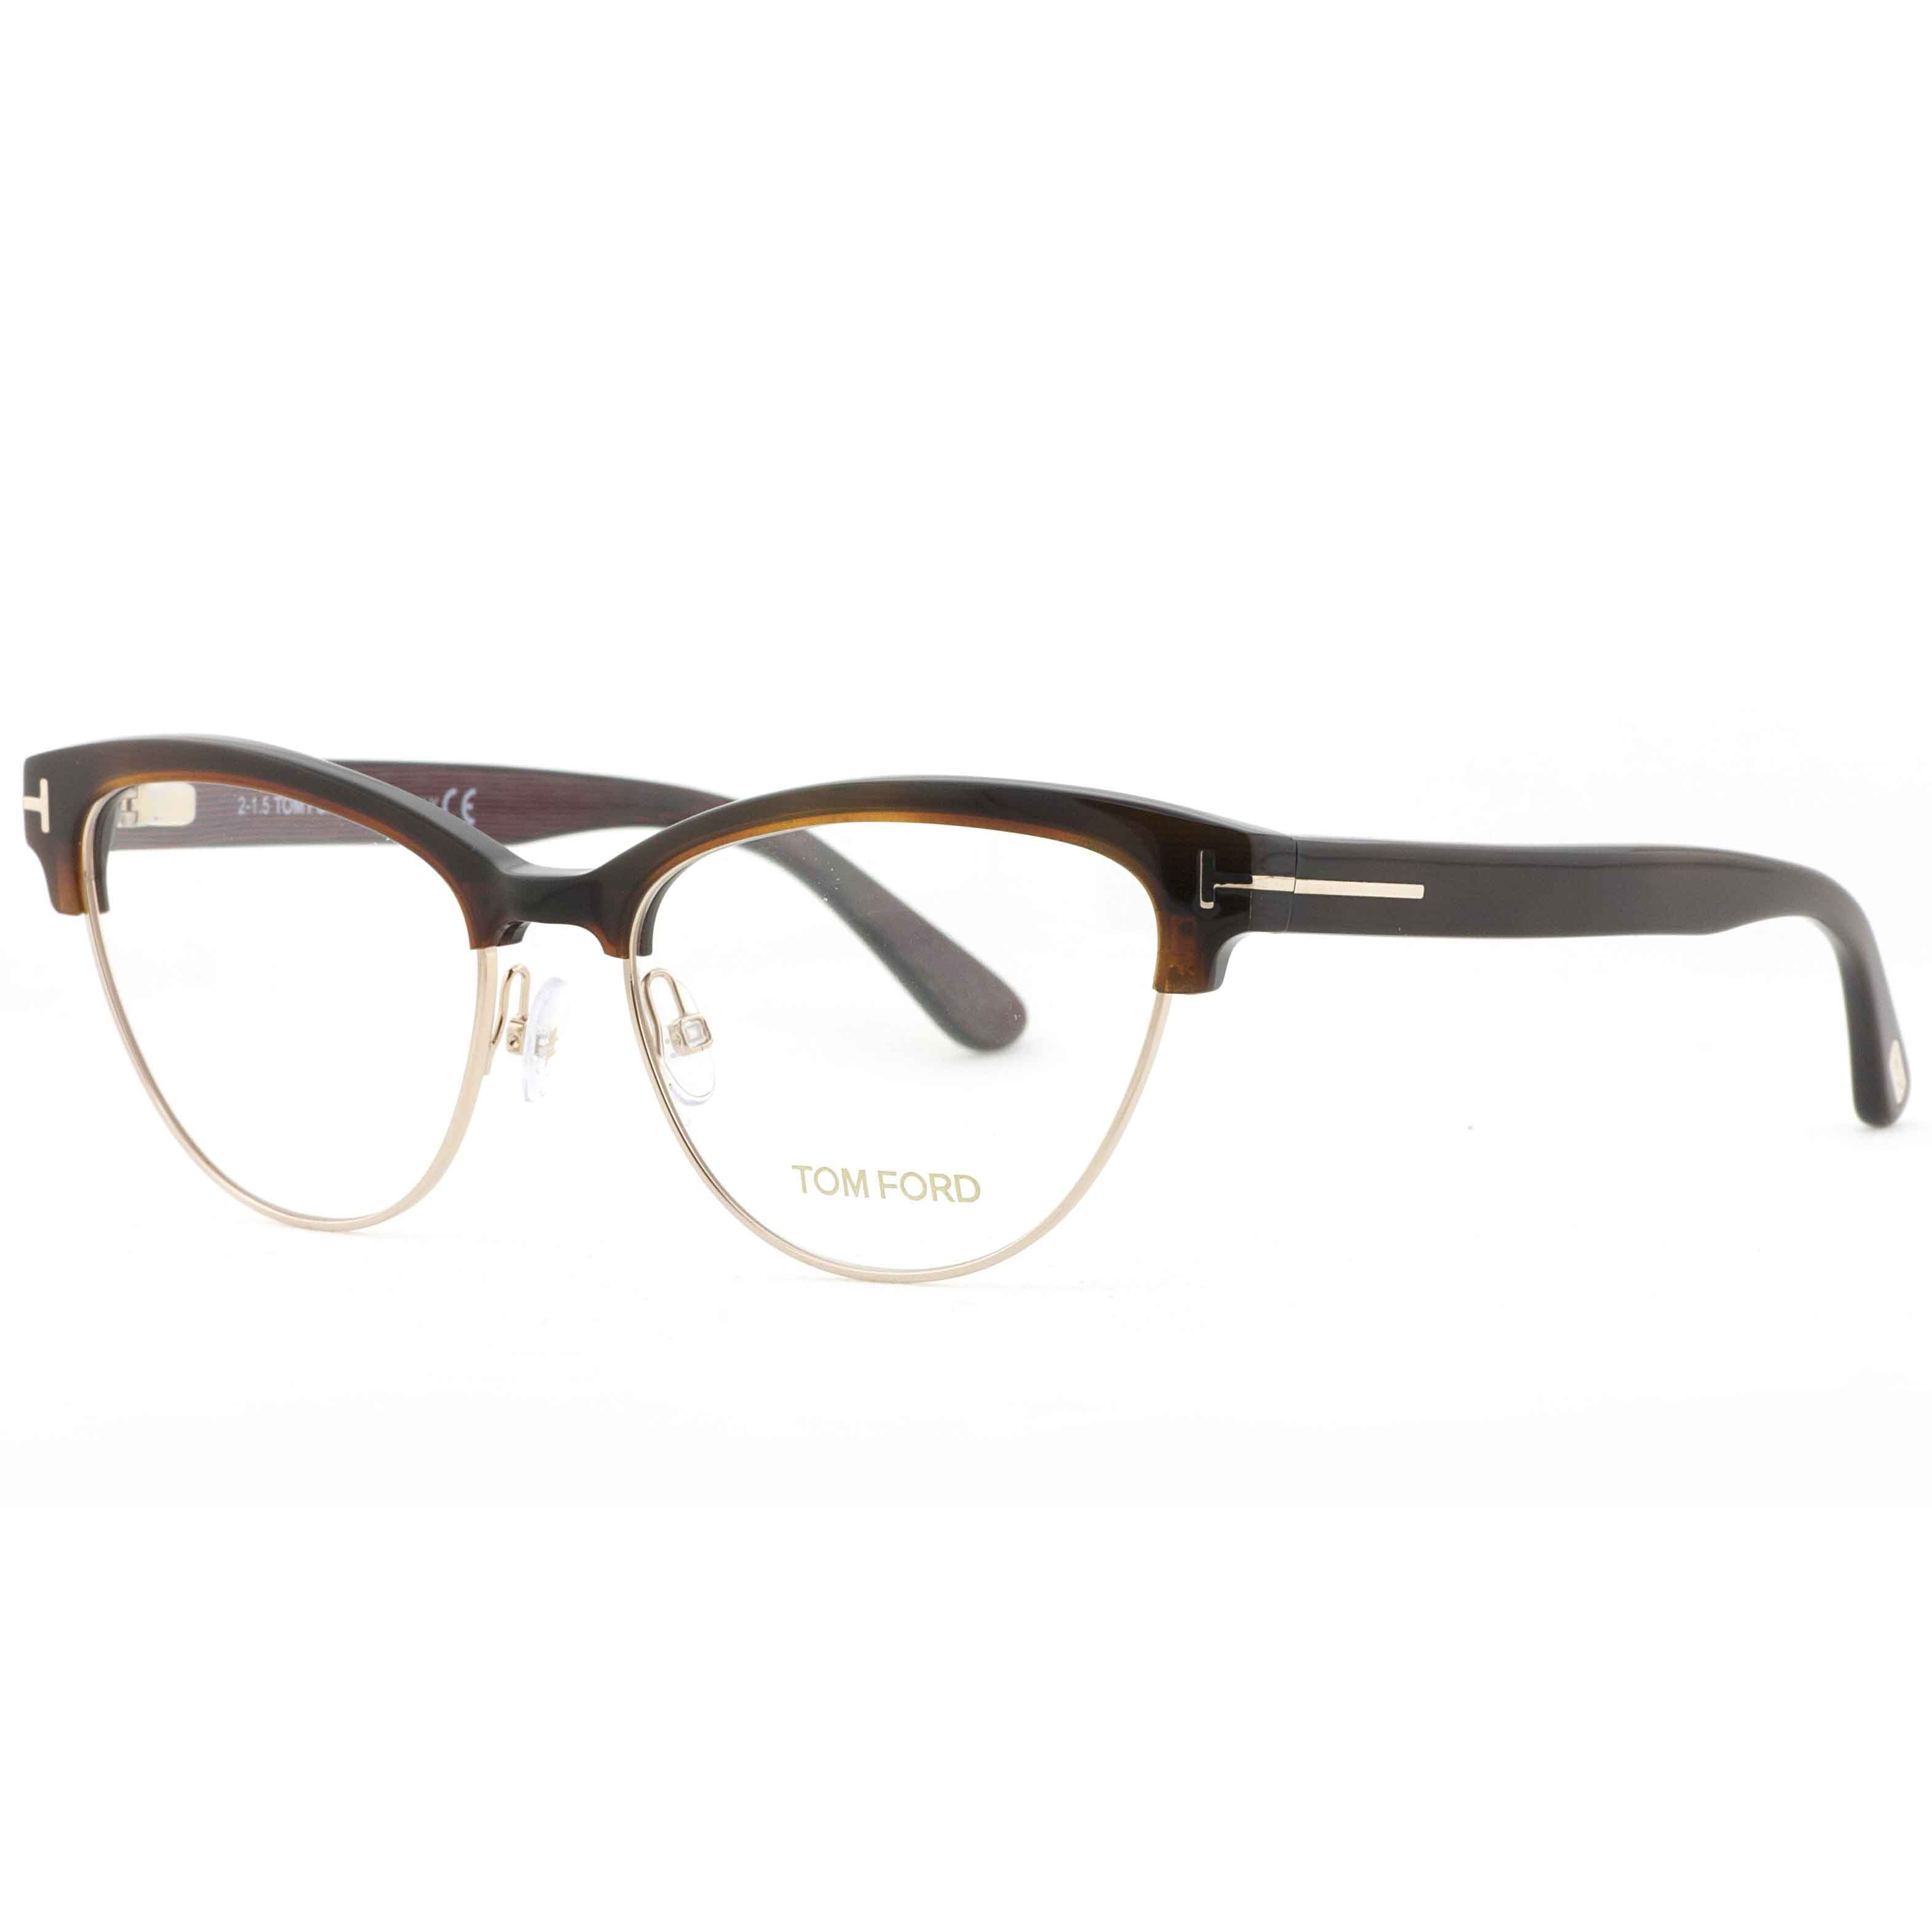 eyeglasses frames tom for brown optical lyst in normal ford men accessories plastic square eyewear havana gallery product